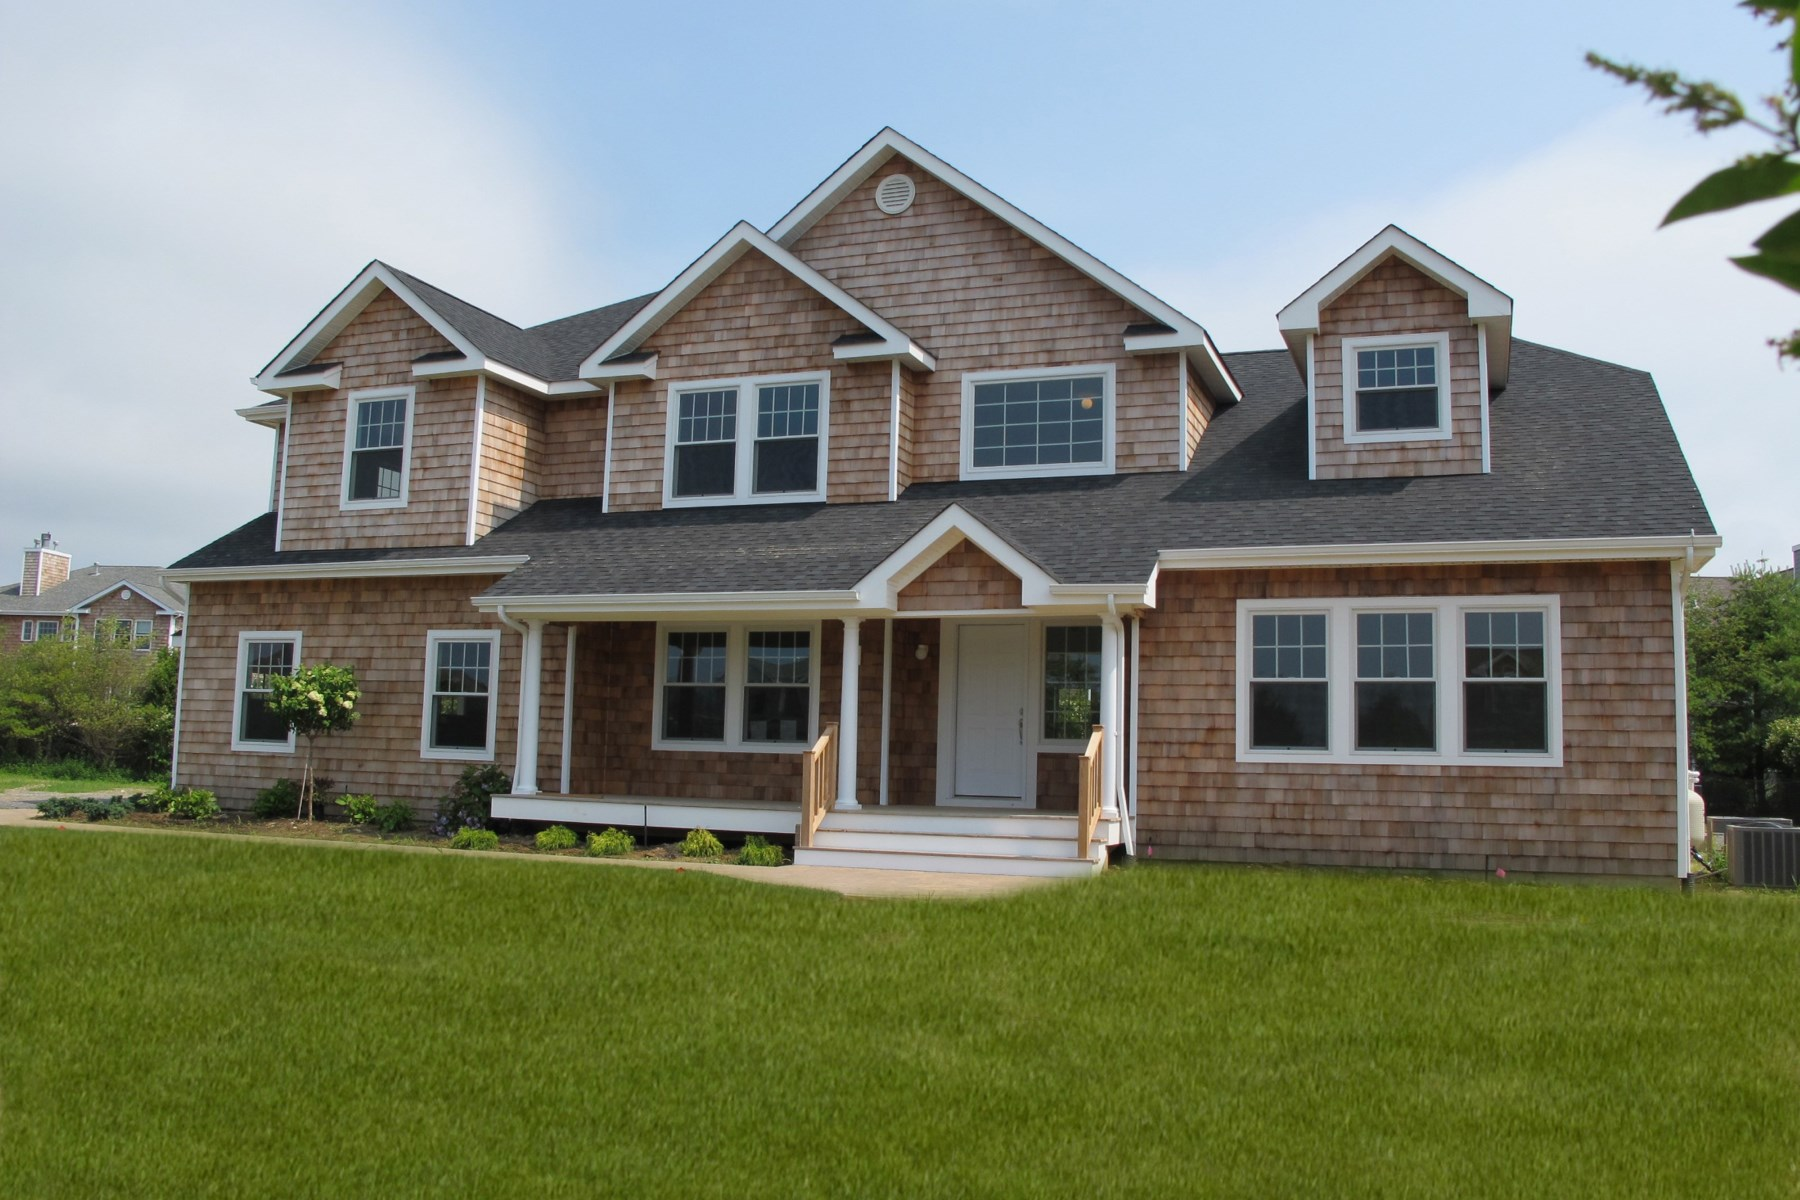 Single Family Home for Sale at Southampton Meadows Estates - T Model 27 Summer Lane, Lot#12 Southampton, New York 11968 United States